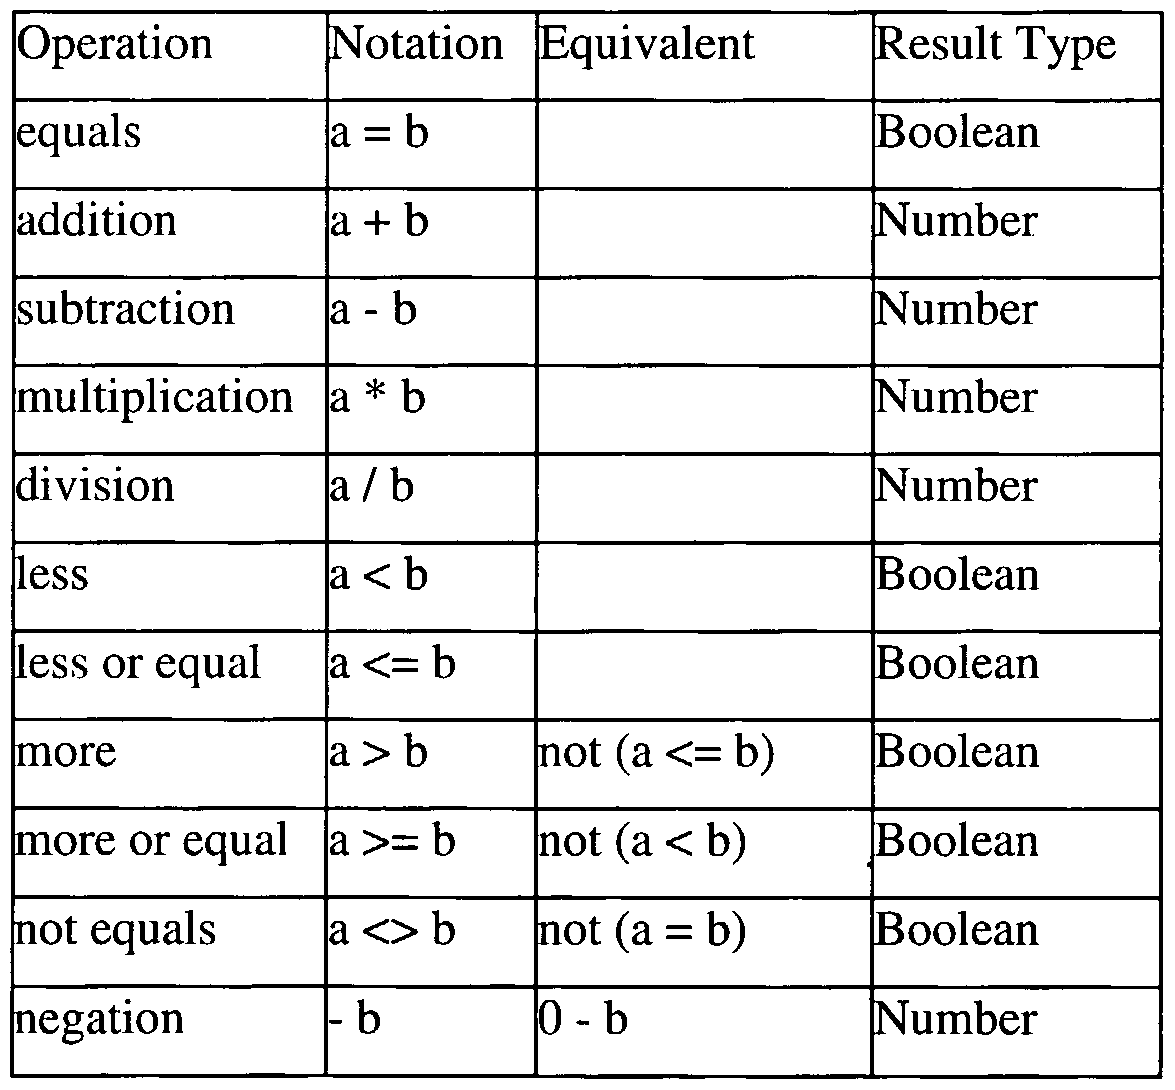 worksheet Property Of Math similiar identity and equality properties algebra keywords property worksheet additionally ex le of in math